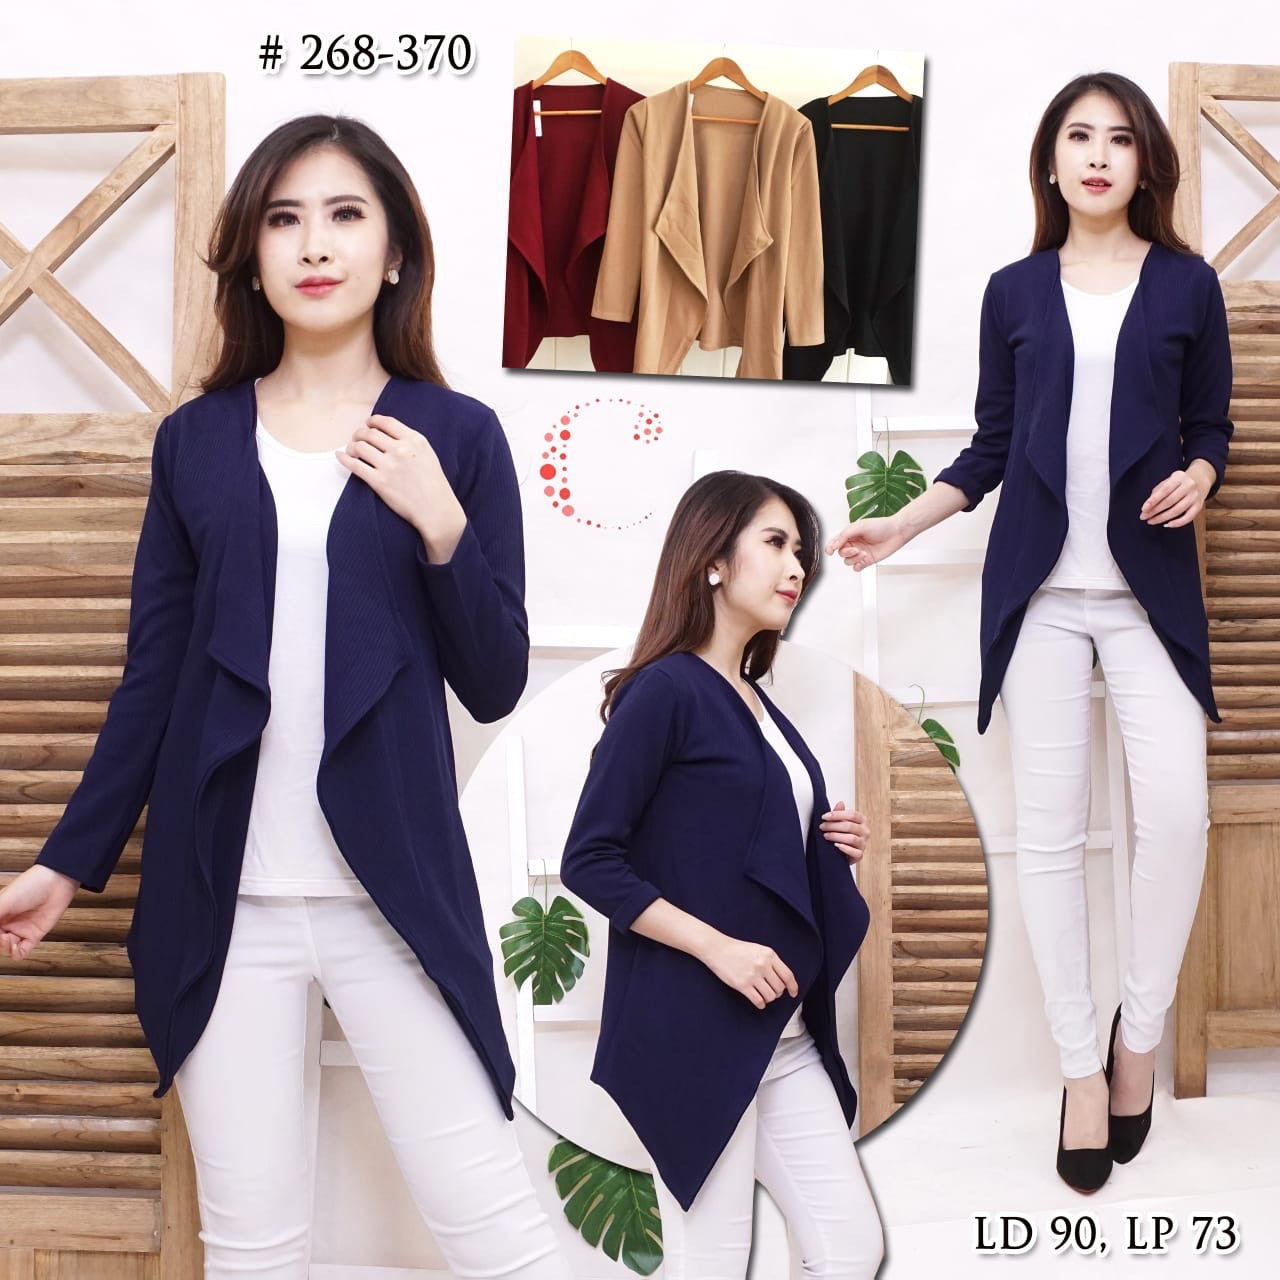 Outer 268-370